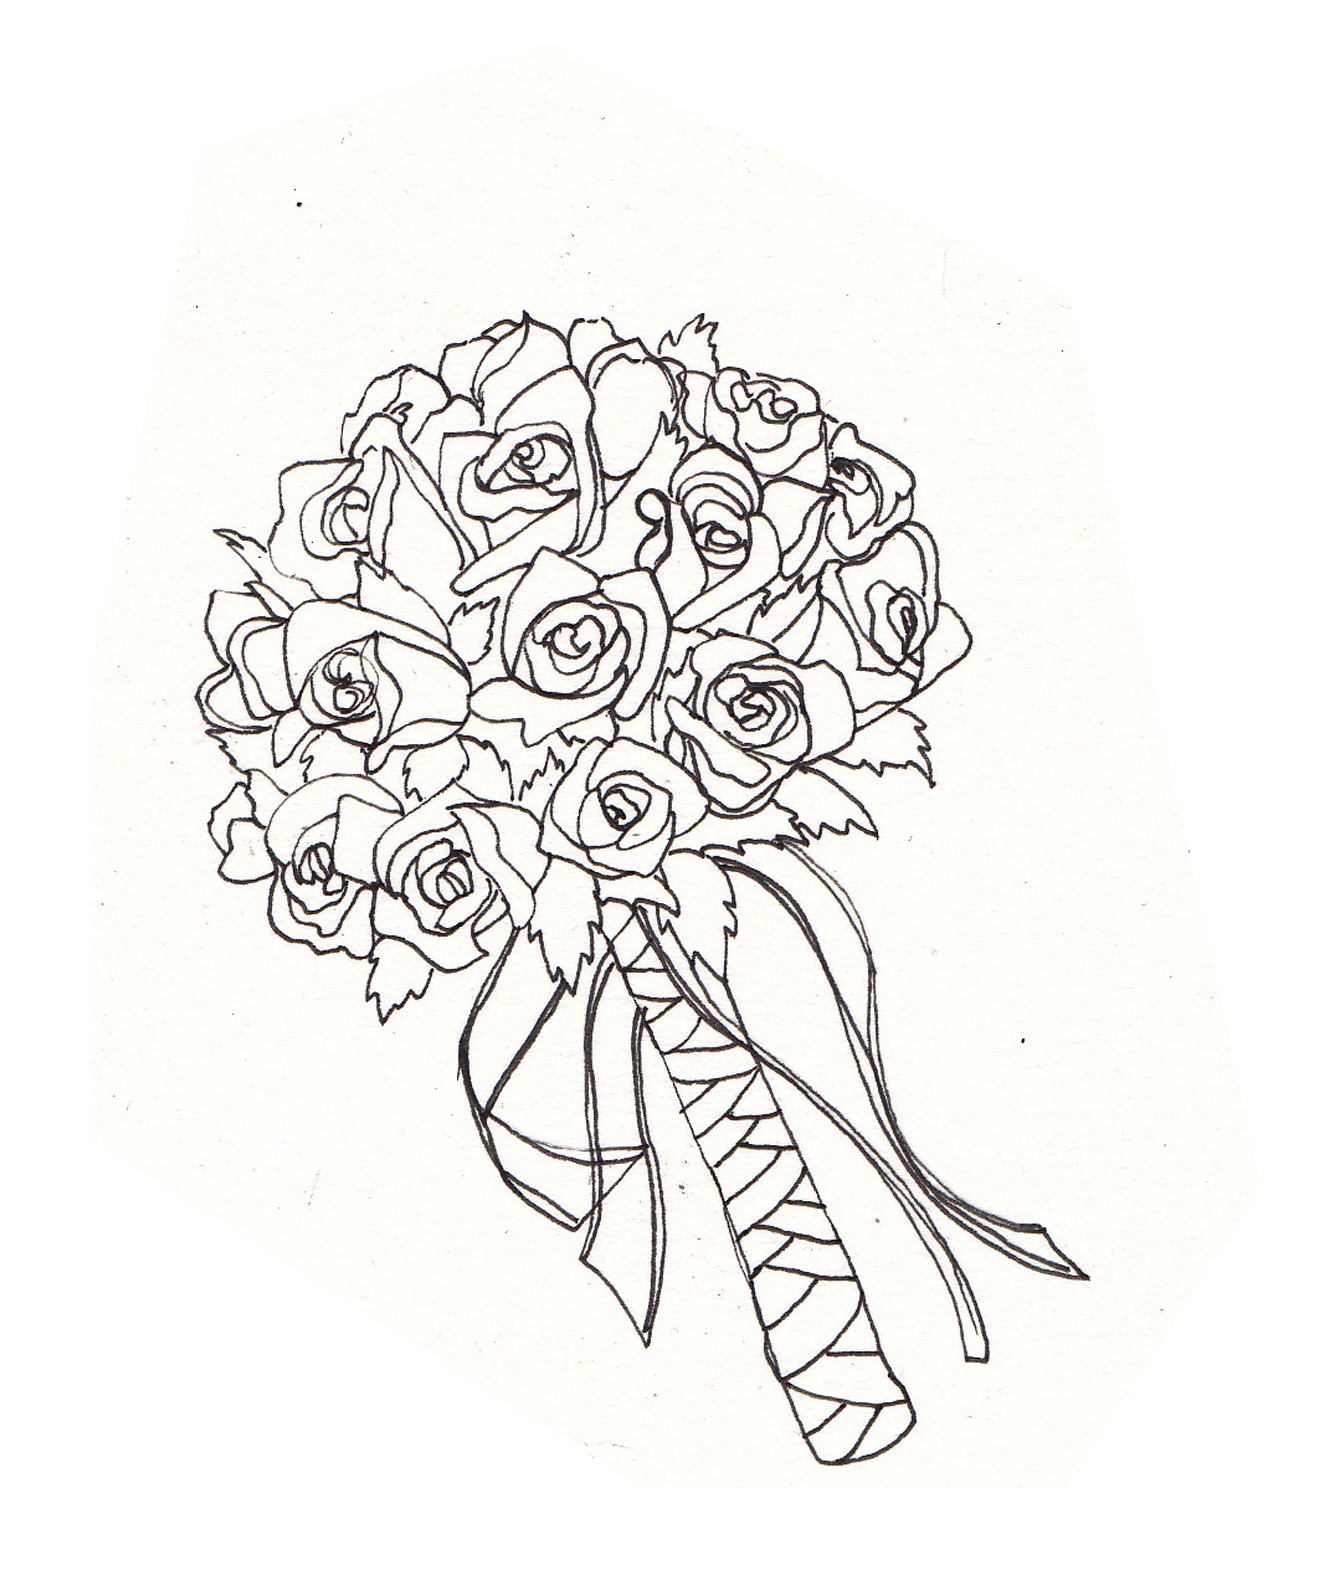 Drawn bouquet wedding bouquet Into Today drawing Night: Two